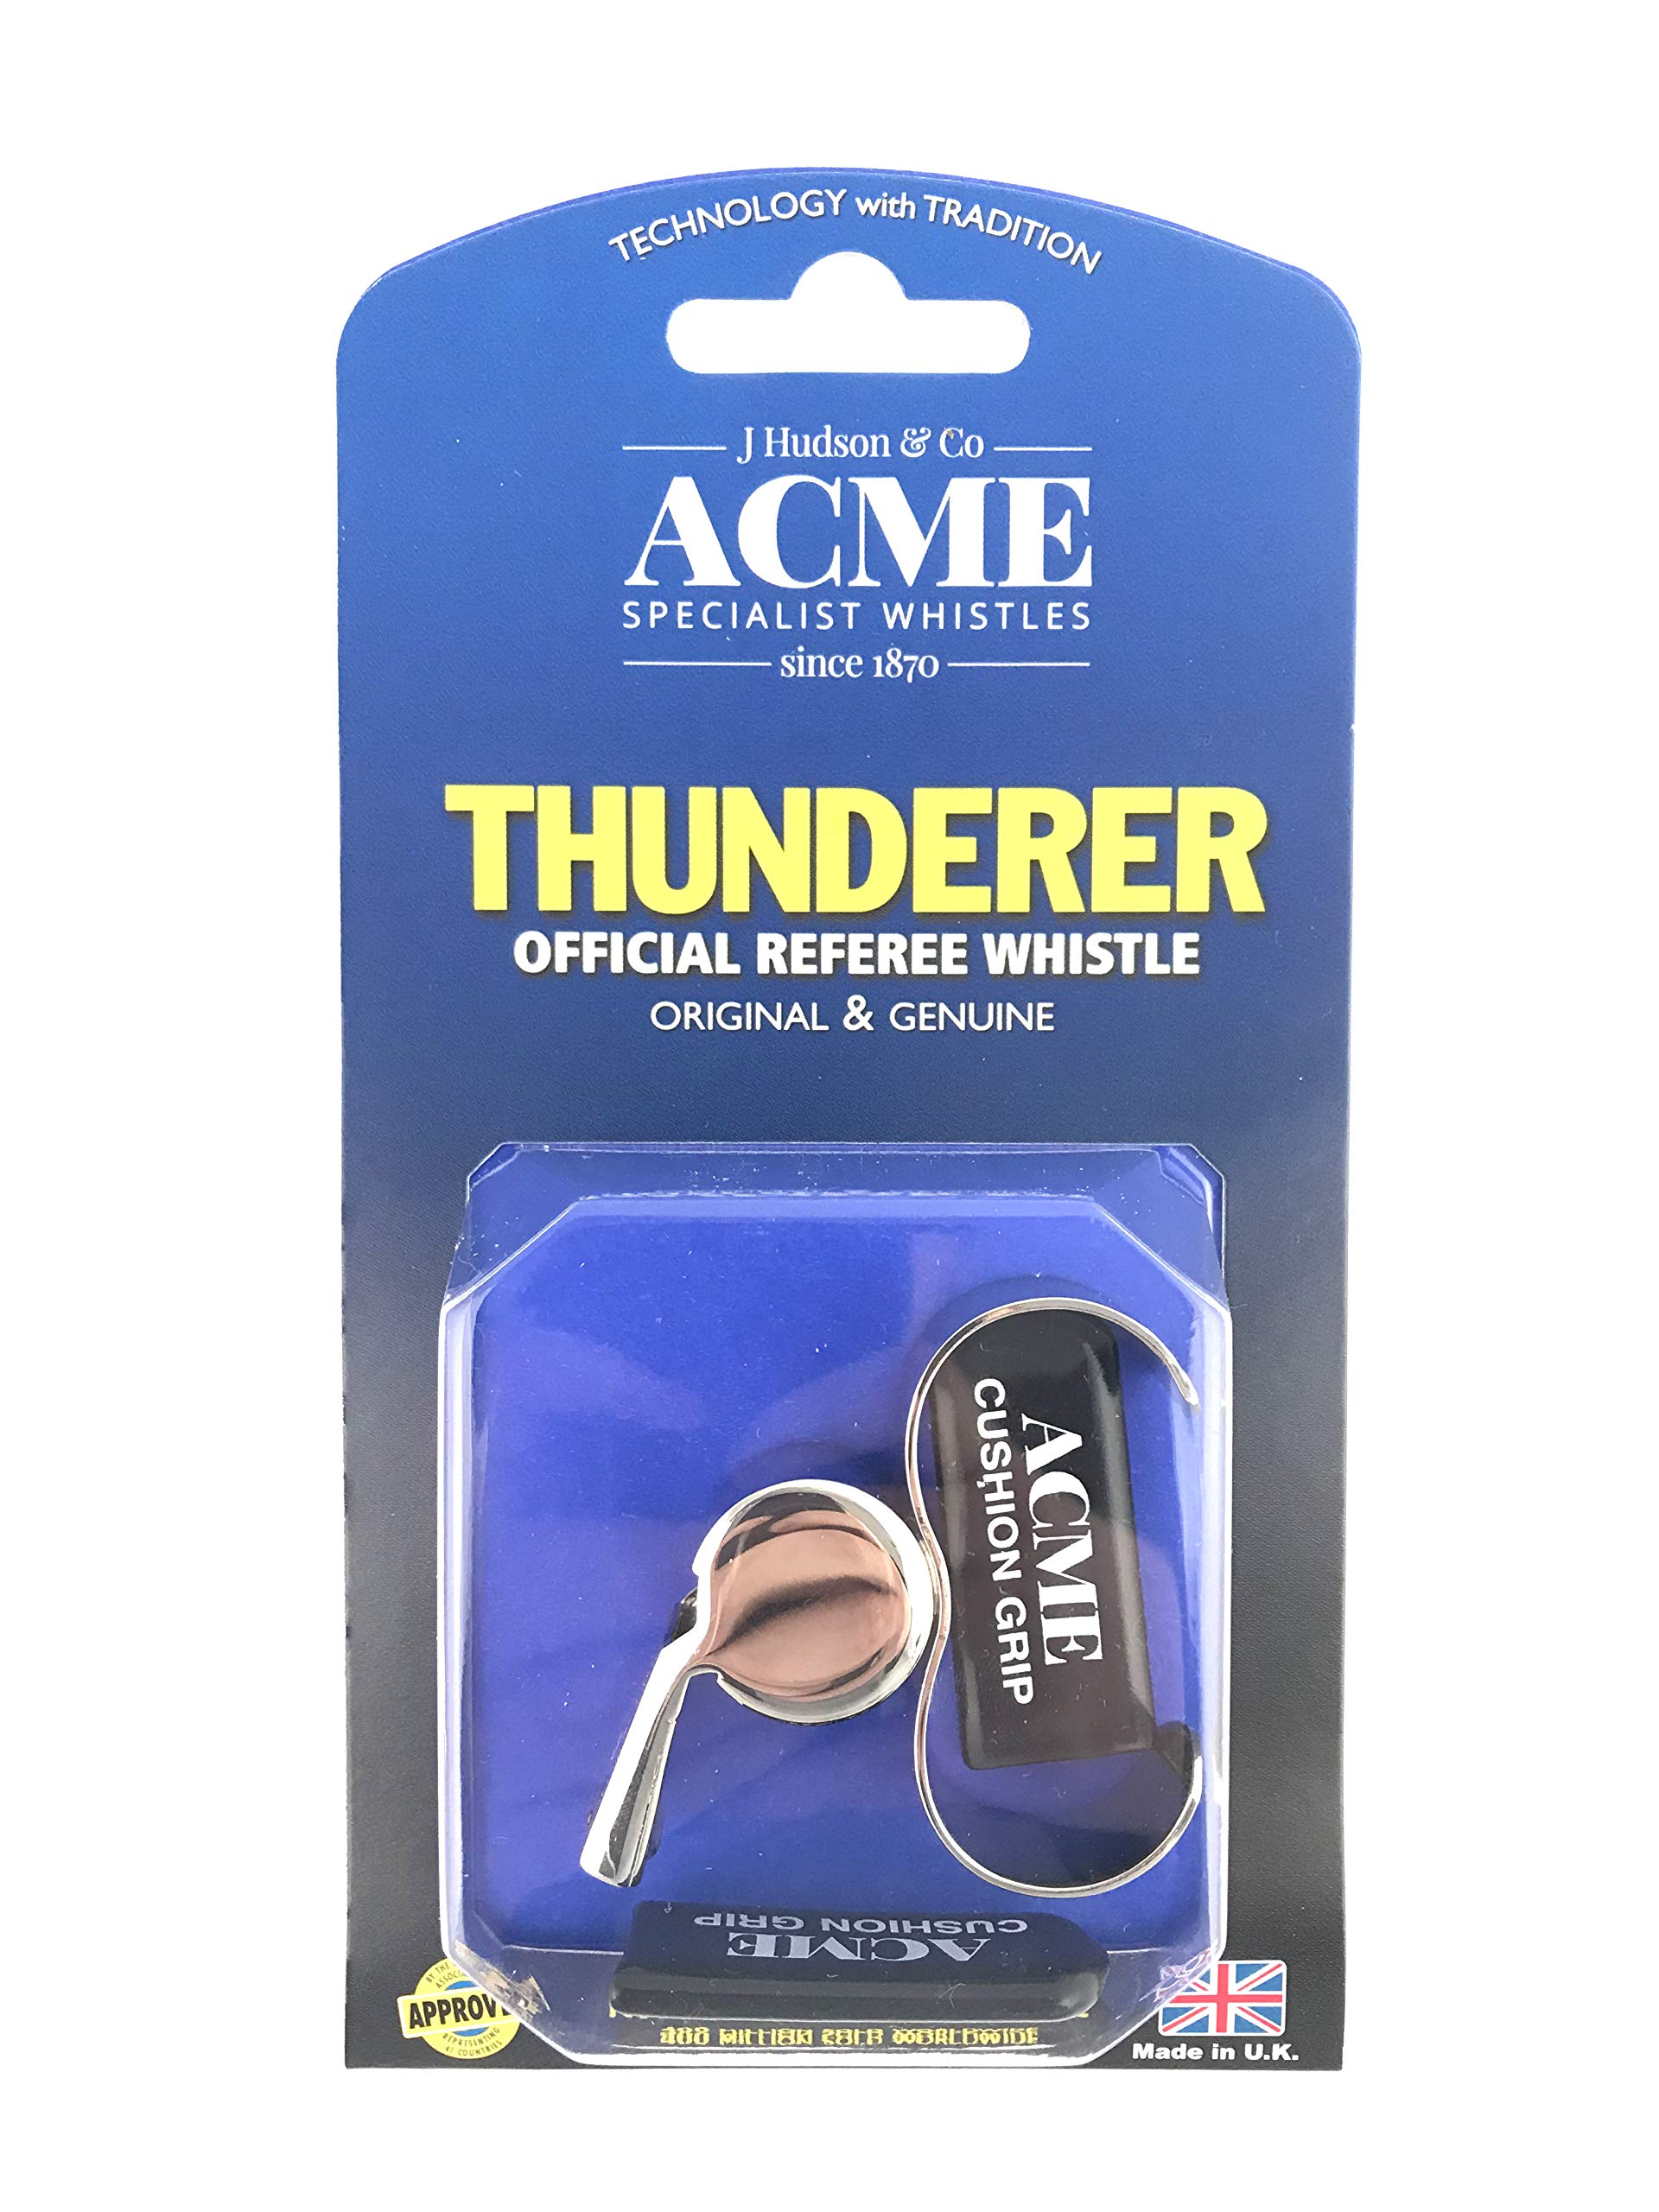 Acme Thunderer 60.5 Finger Grip Whistle Nickel Plated 477/60.5 by Acme Whistle